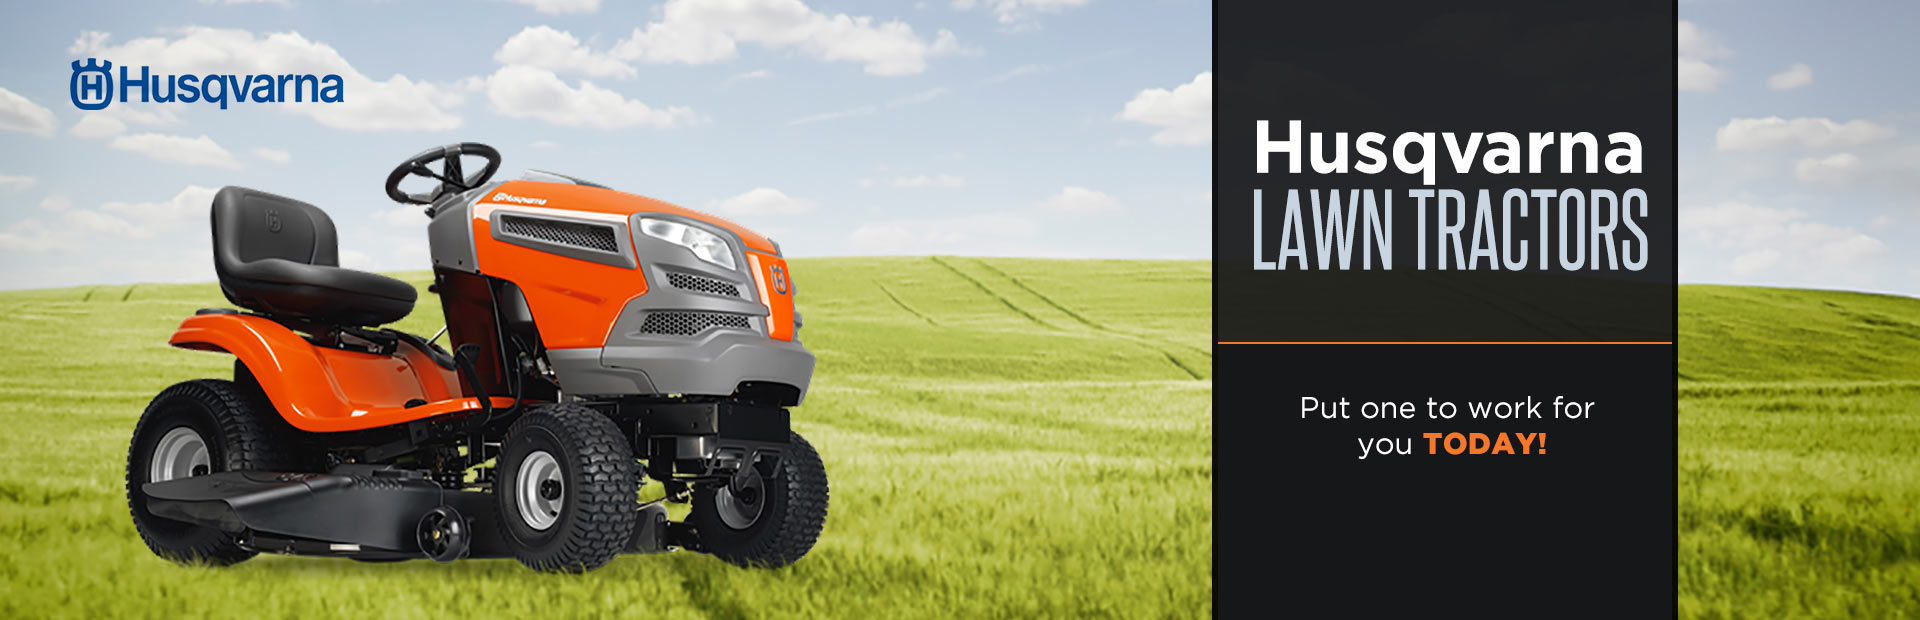 Husqvarna Lawn Tractors: Click here to view the models.